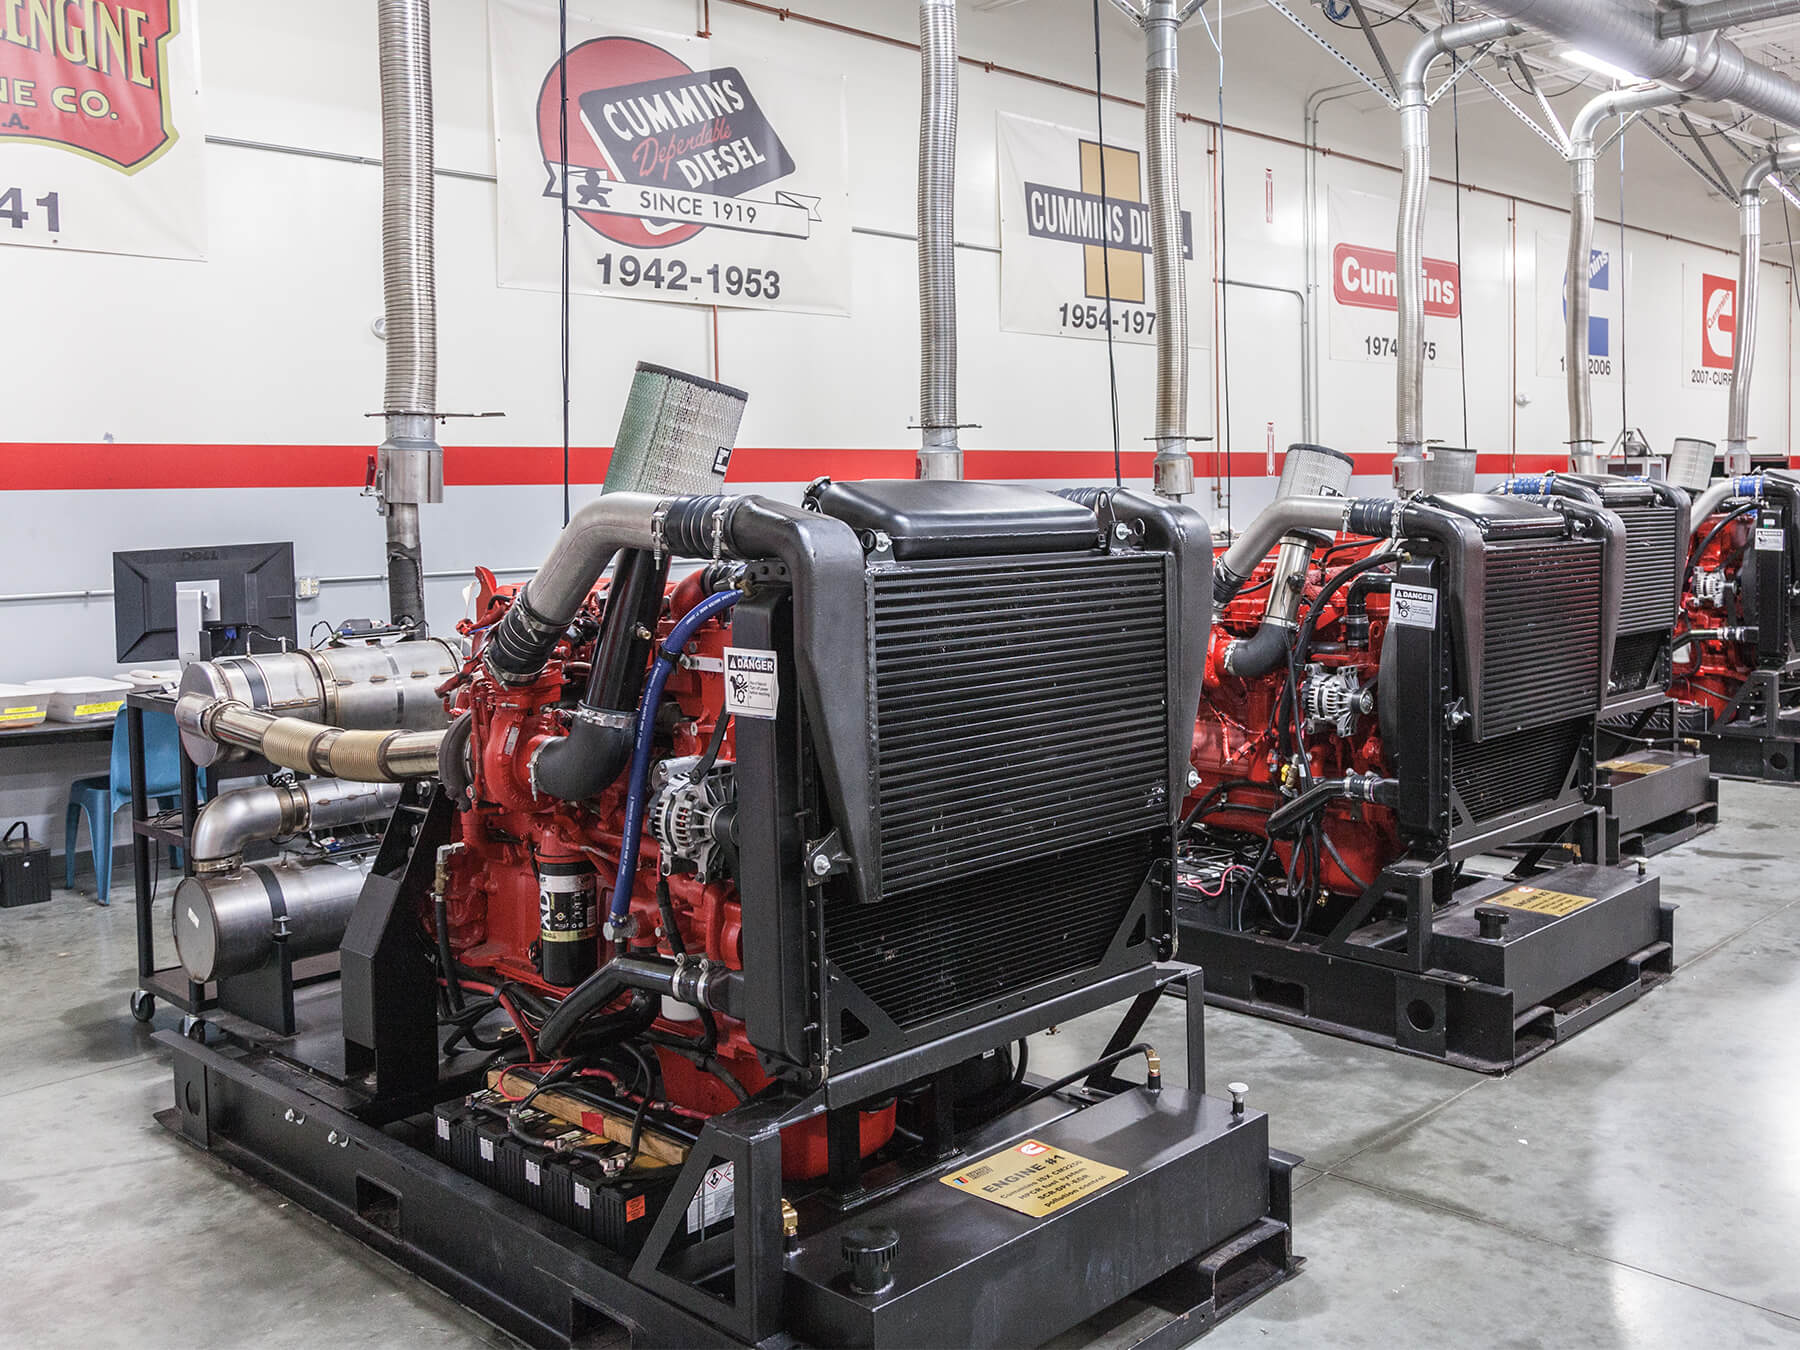 Wide angle photo of cummins diesel engines in the cummins lab